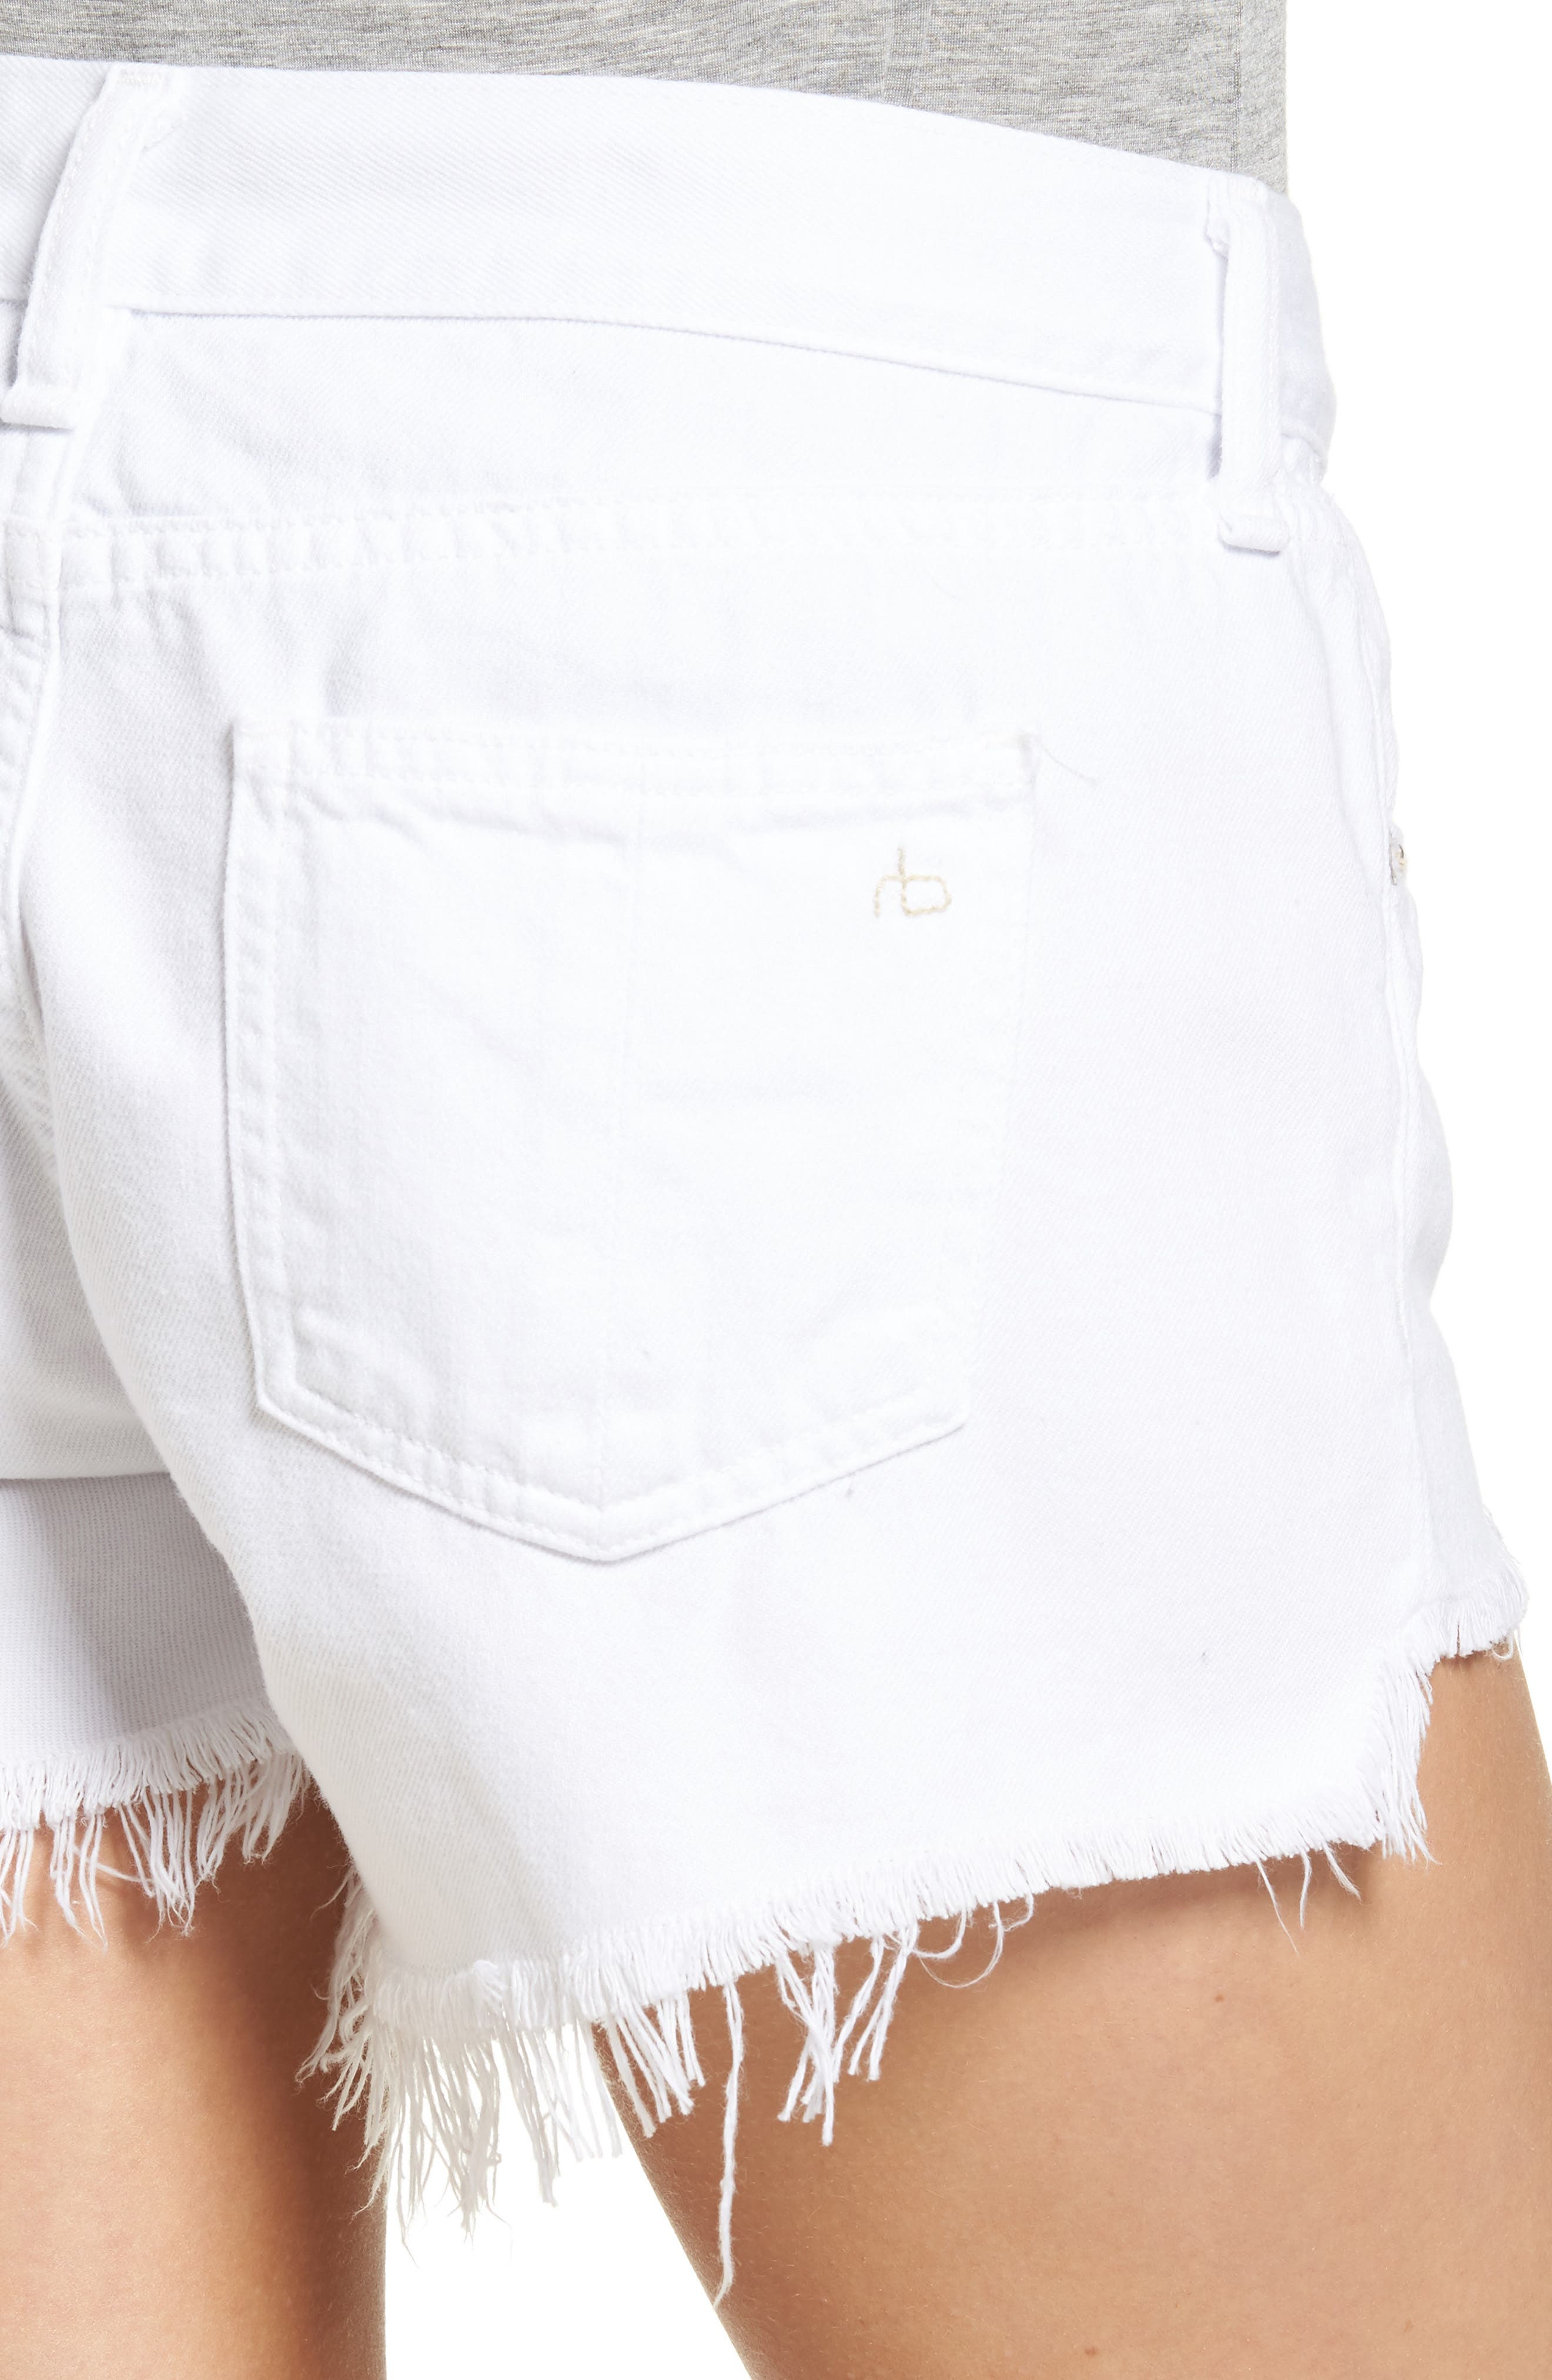 Ripped Cutoff Denim Shorts,                             Alternate thumbnail 4, color,                             126